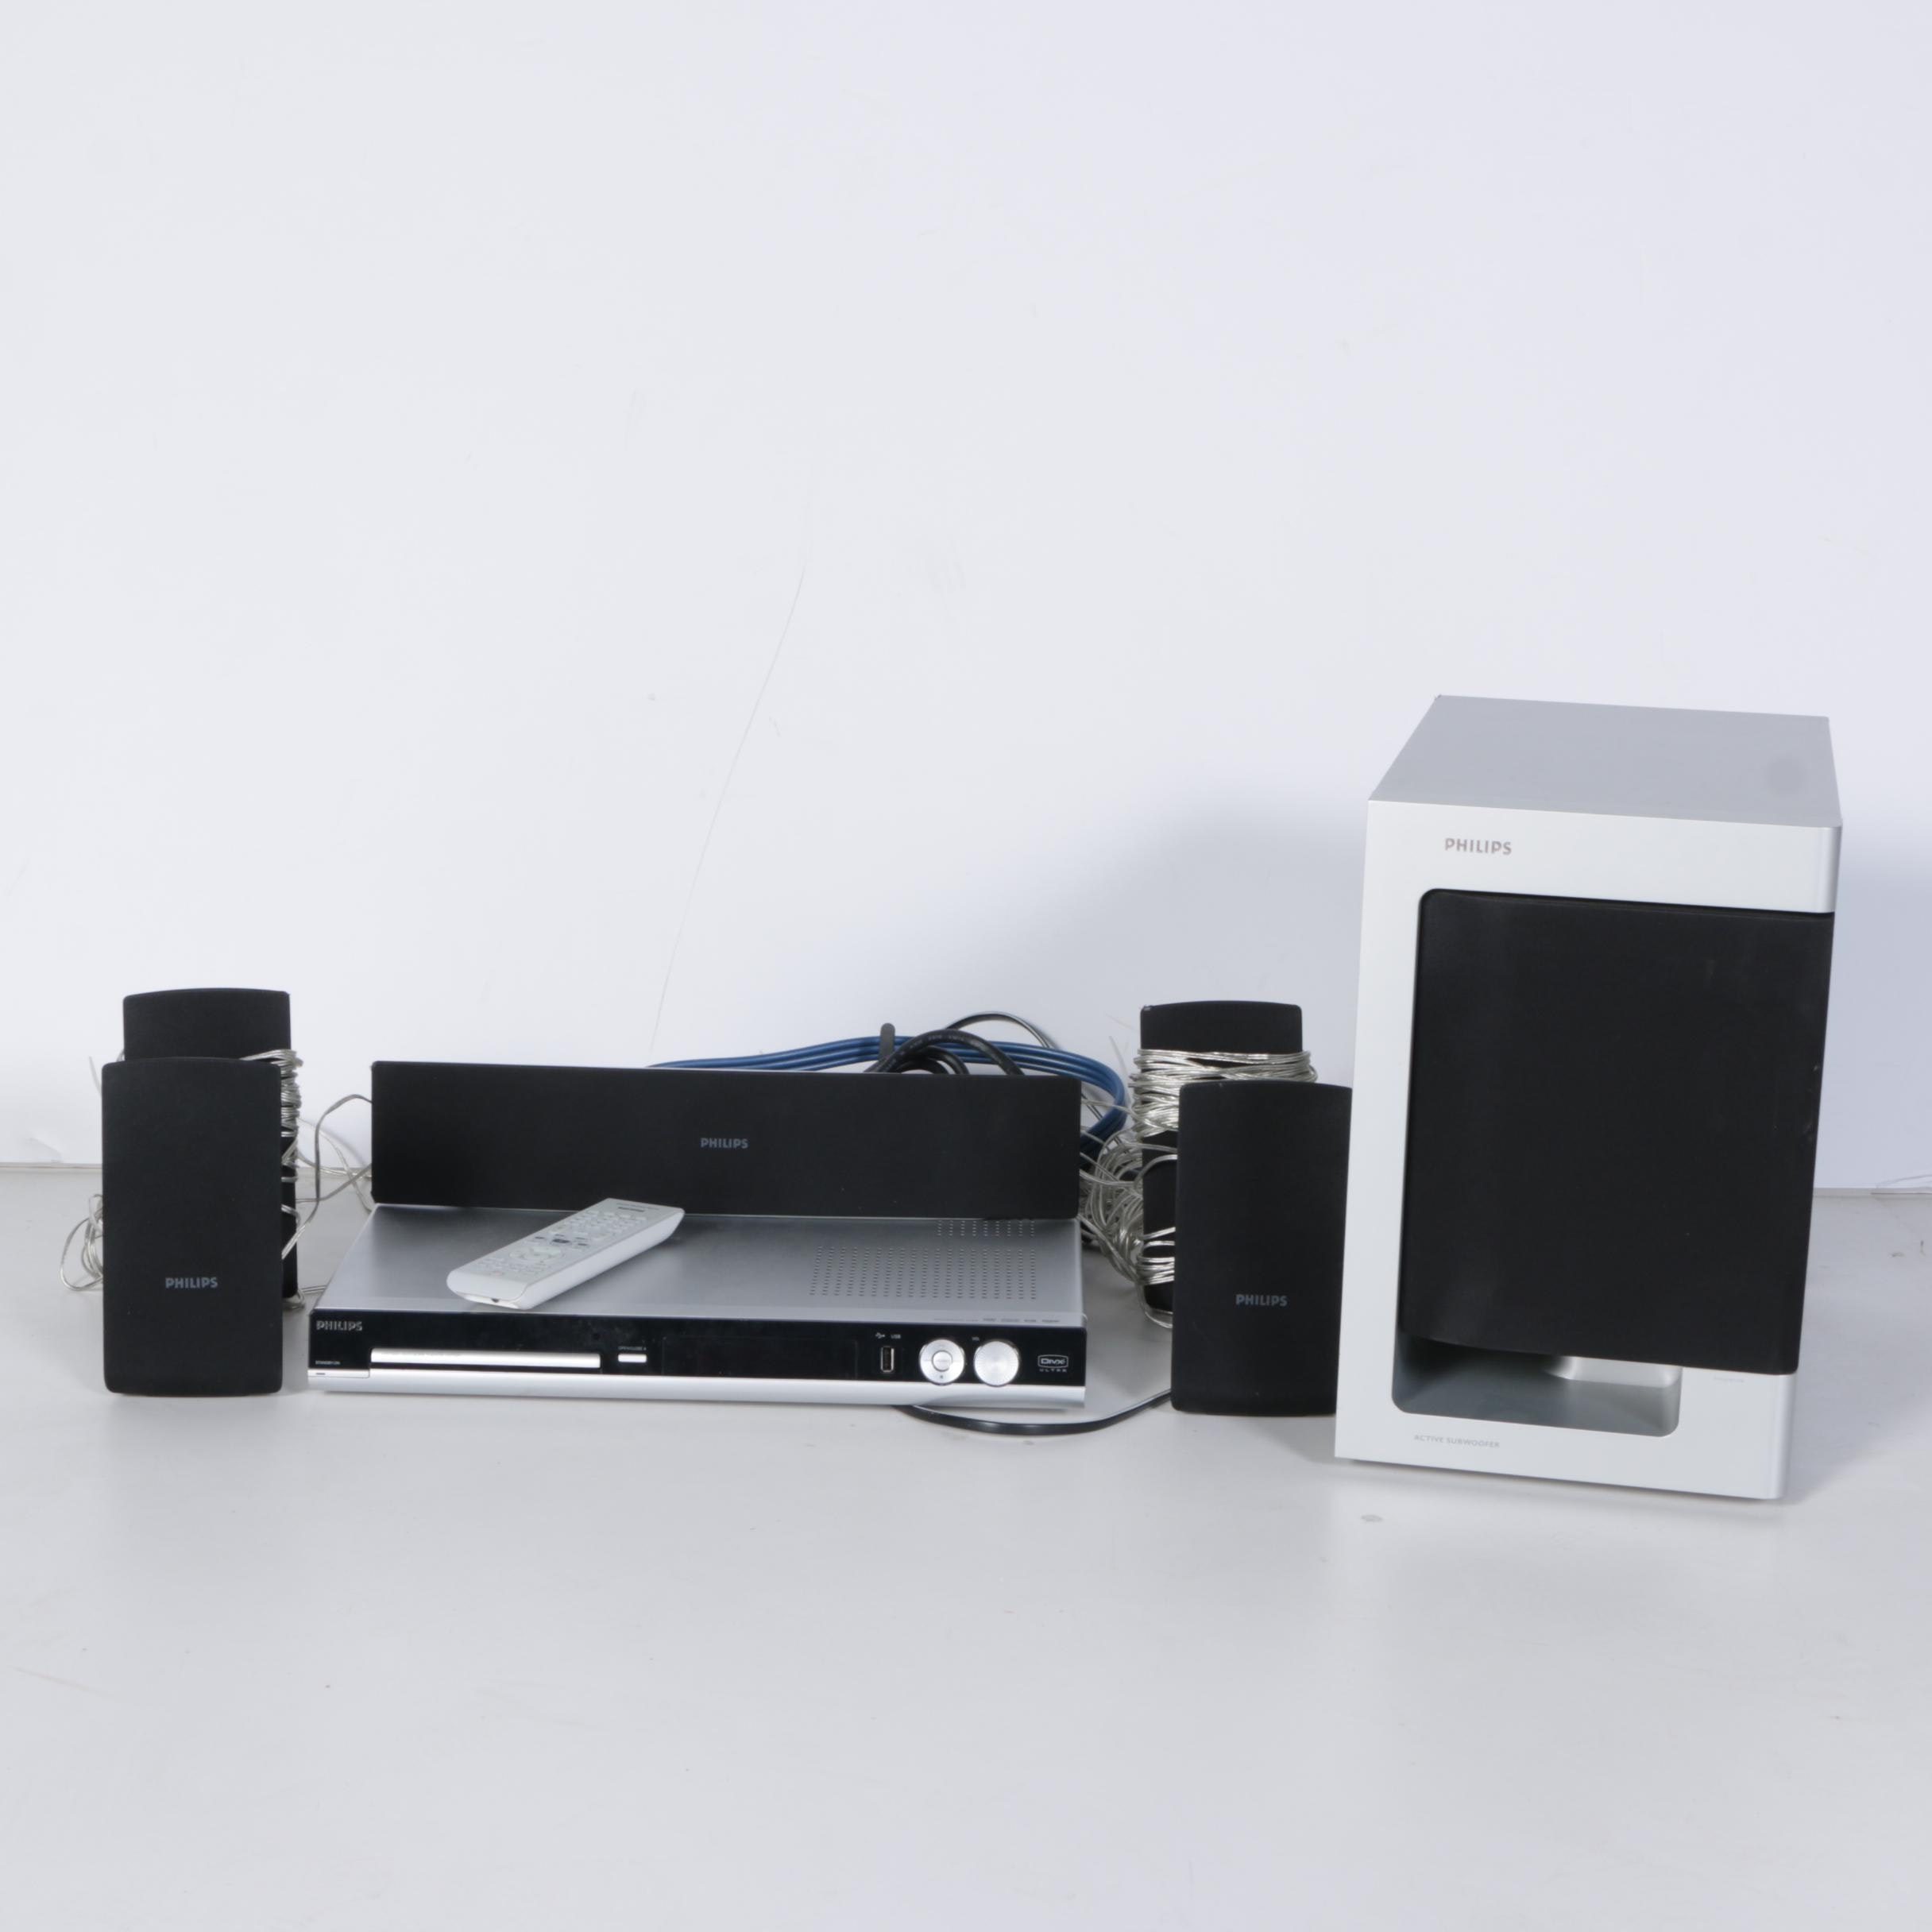 Phillips DVD Player, Speakers and Subwoofer